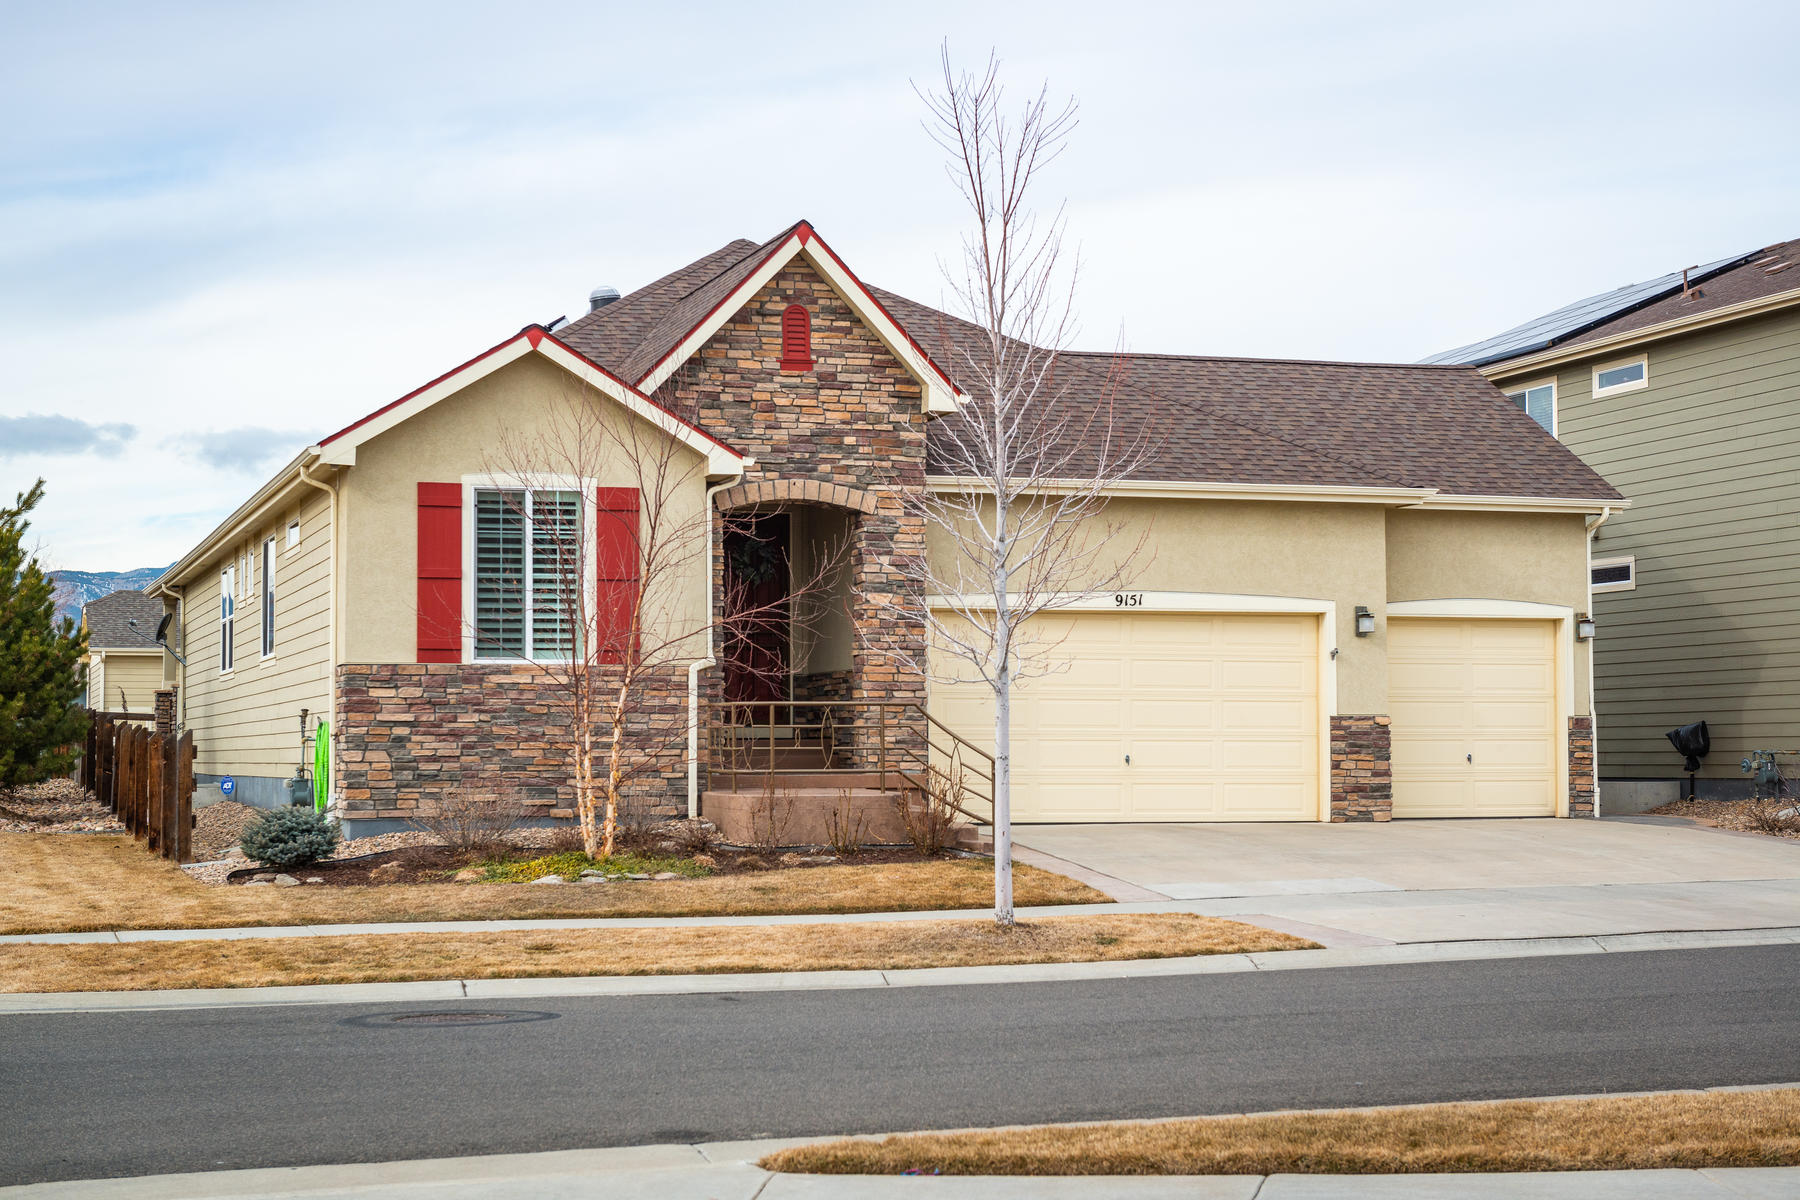 Single Family Homes for Active at Main Floor Living at its Finest! 9151 Fig Street Arvada, Colorado 80005 United States